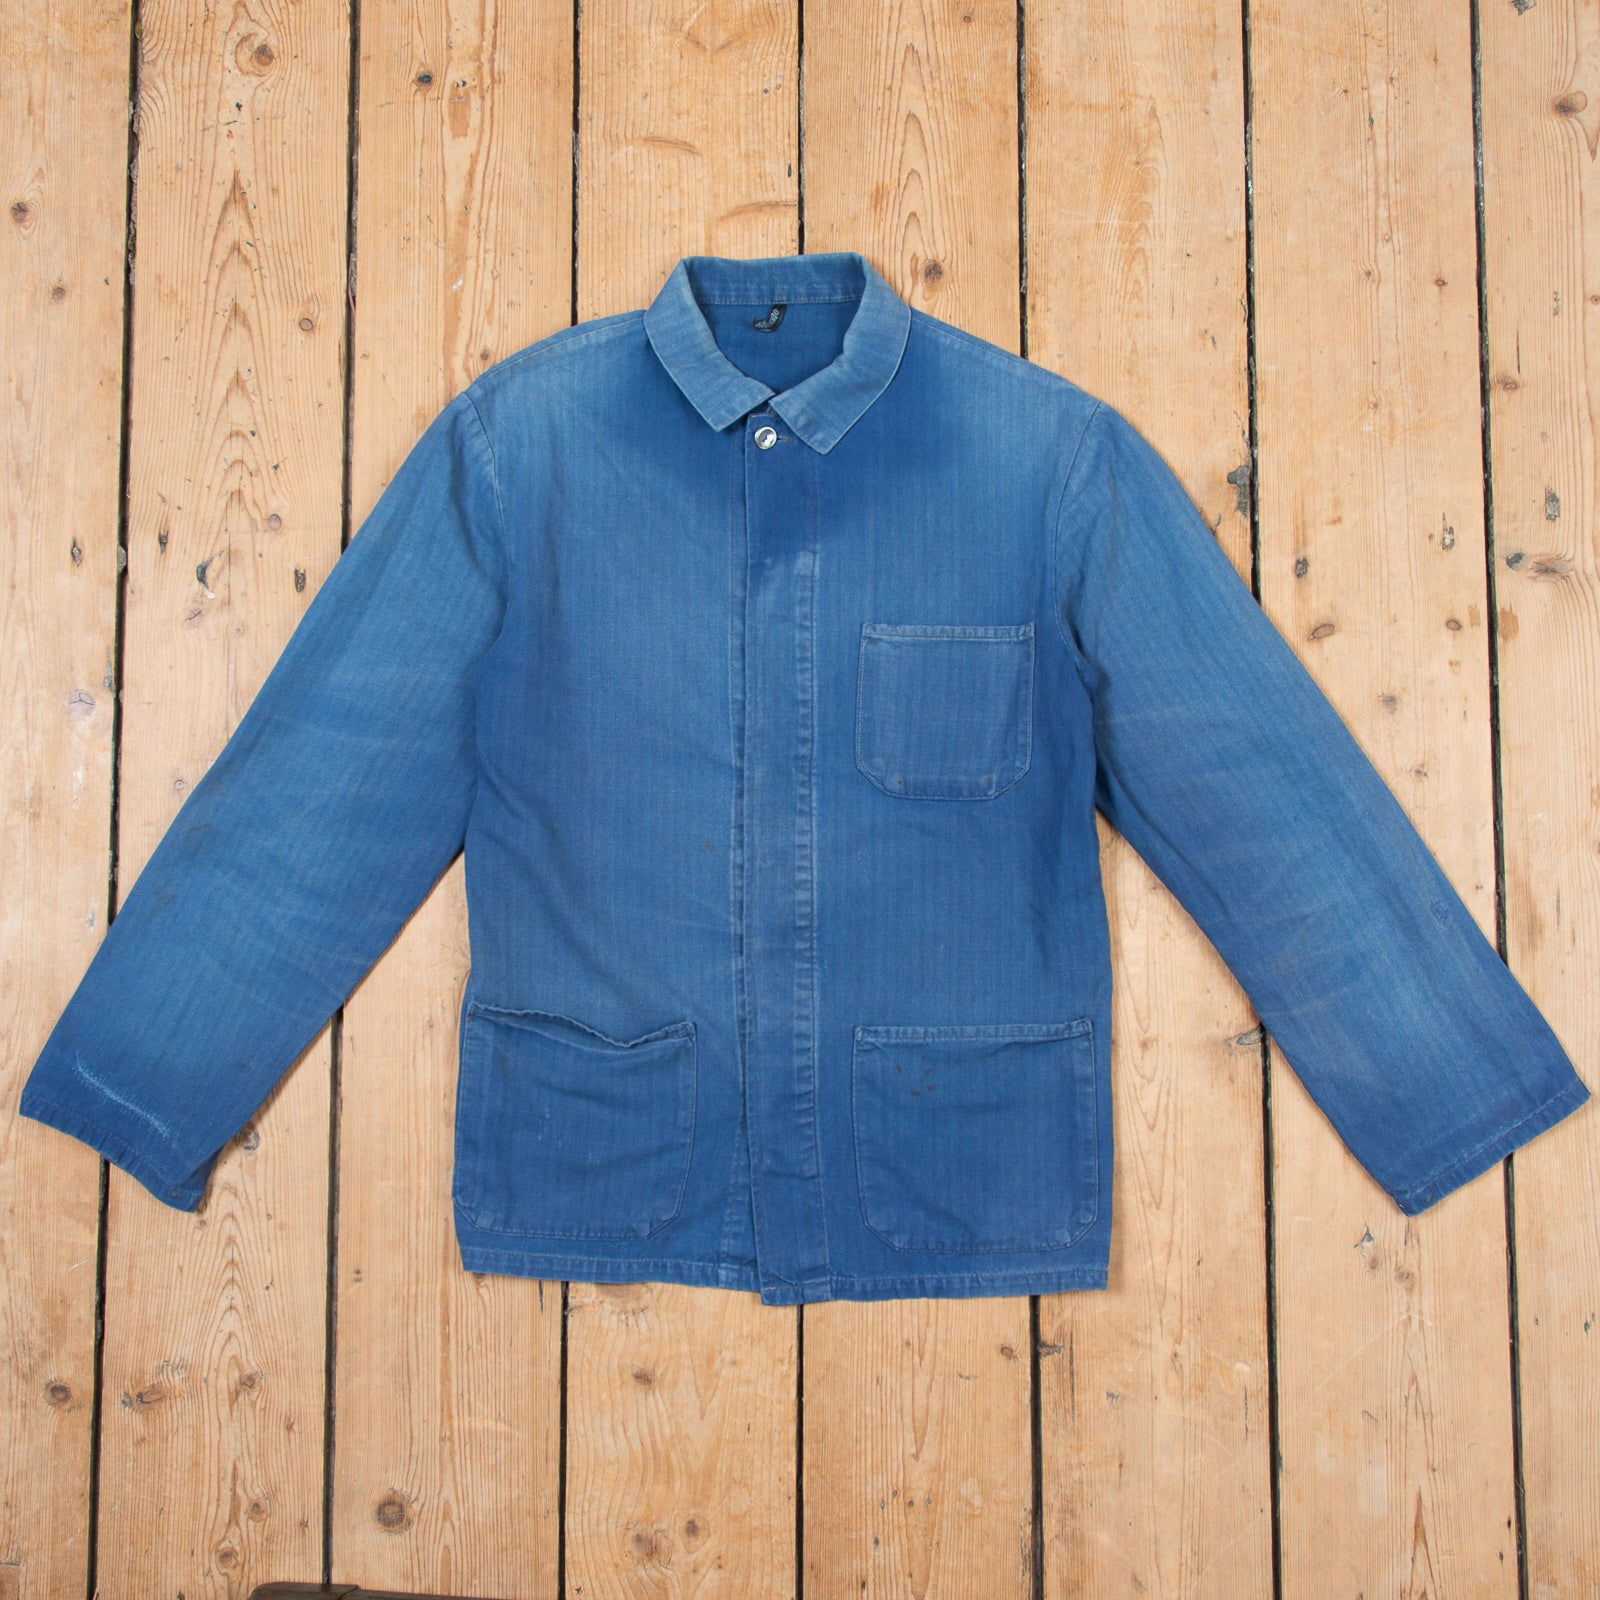 Faded Blue Workers Jacket No. 5